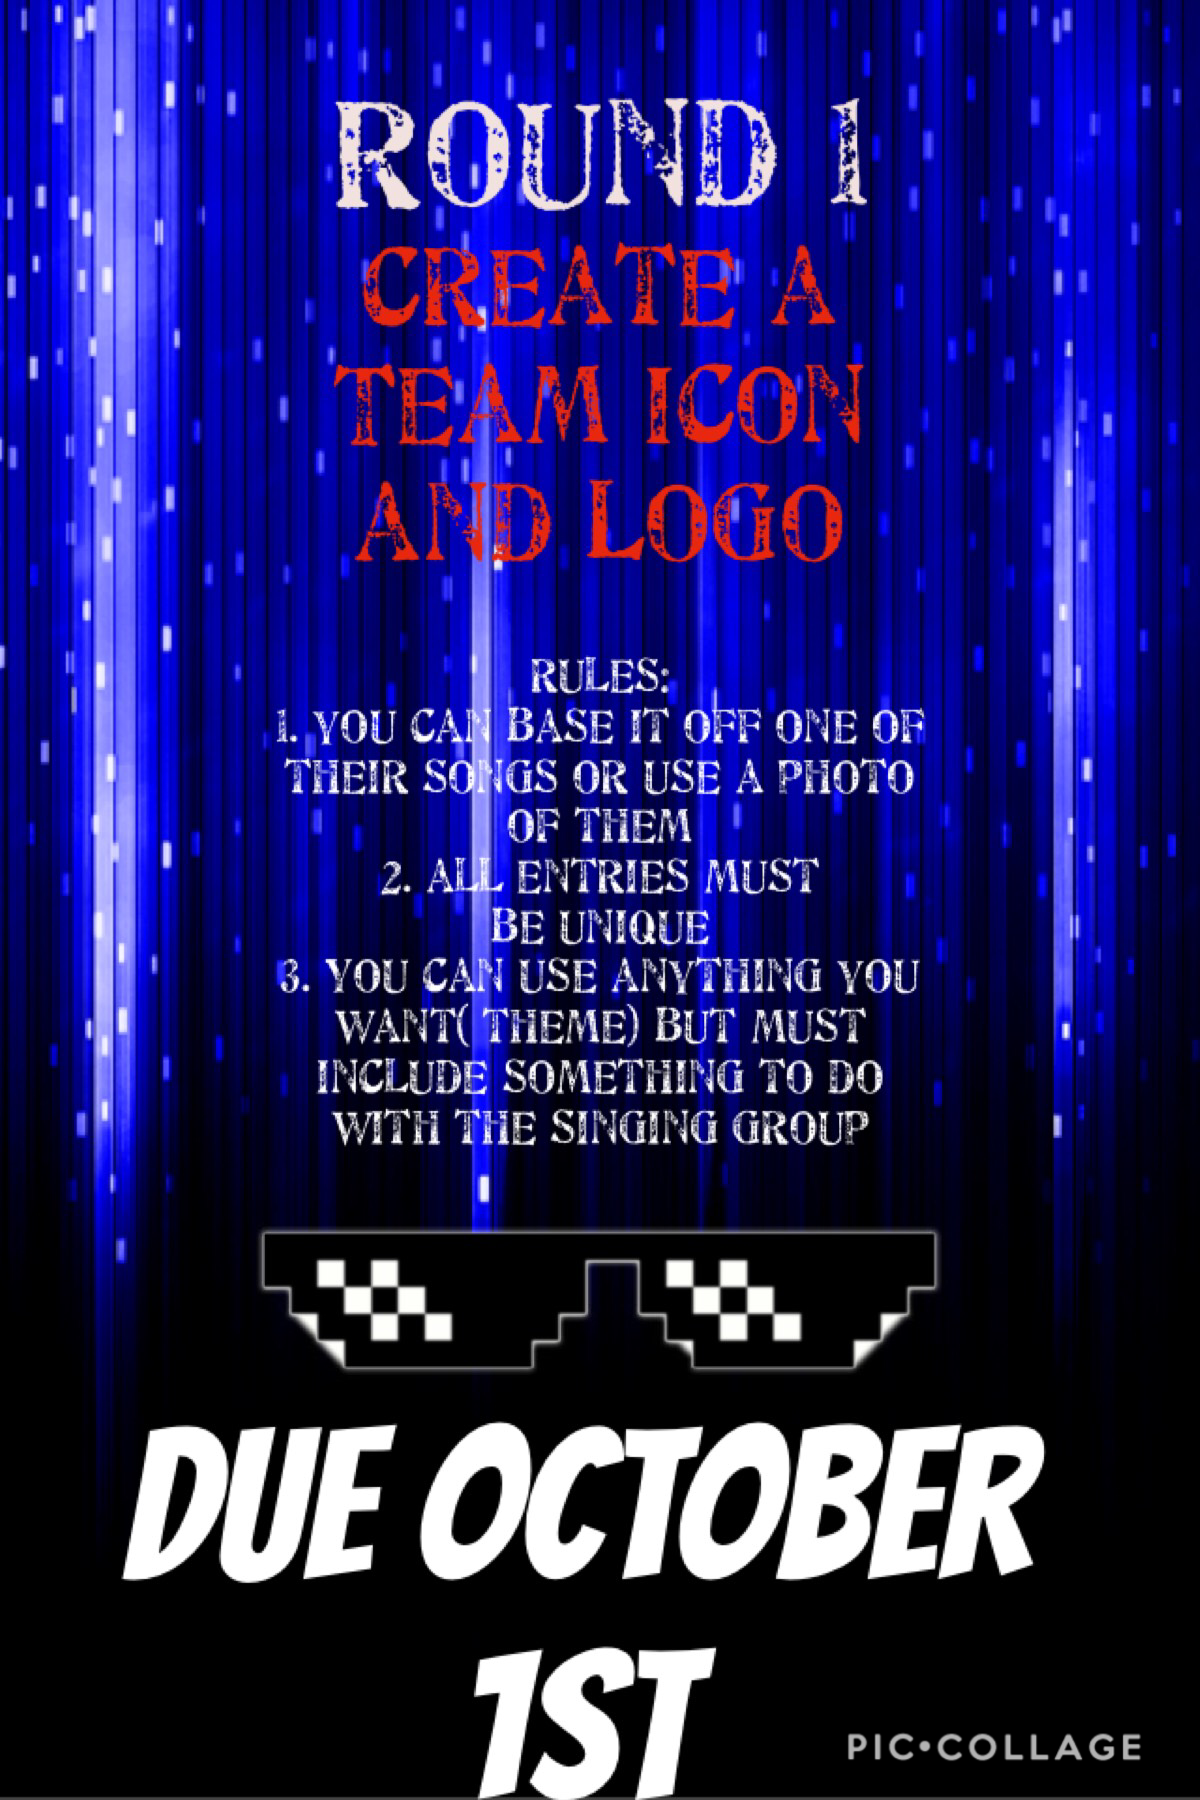 We still have space on any of the teams if you want to participate.